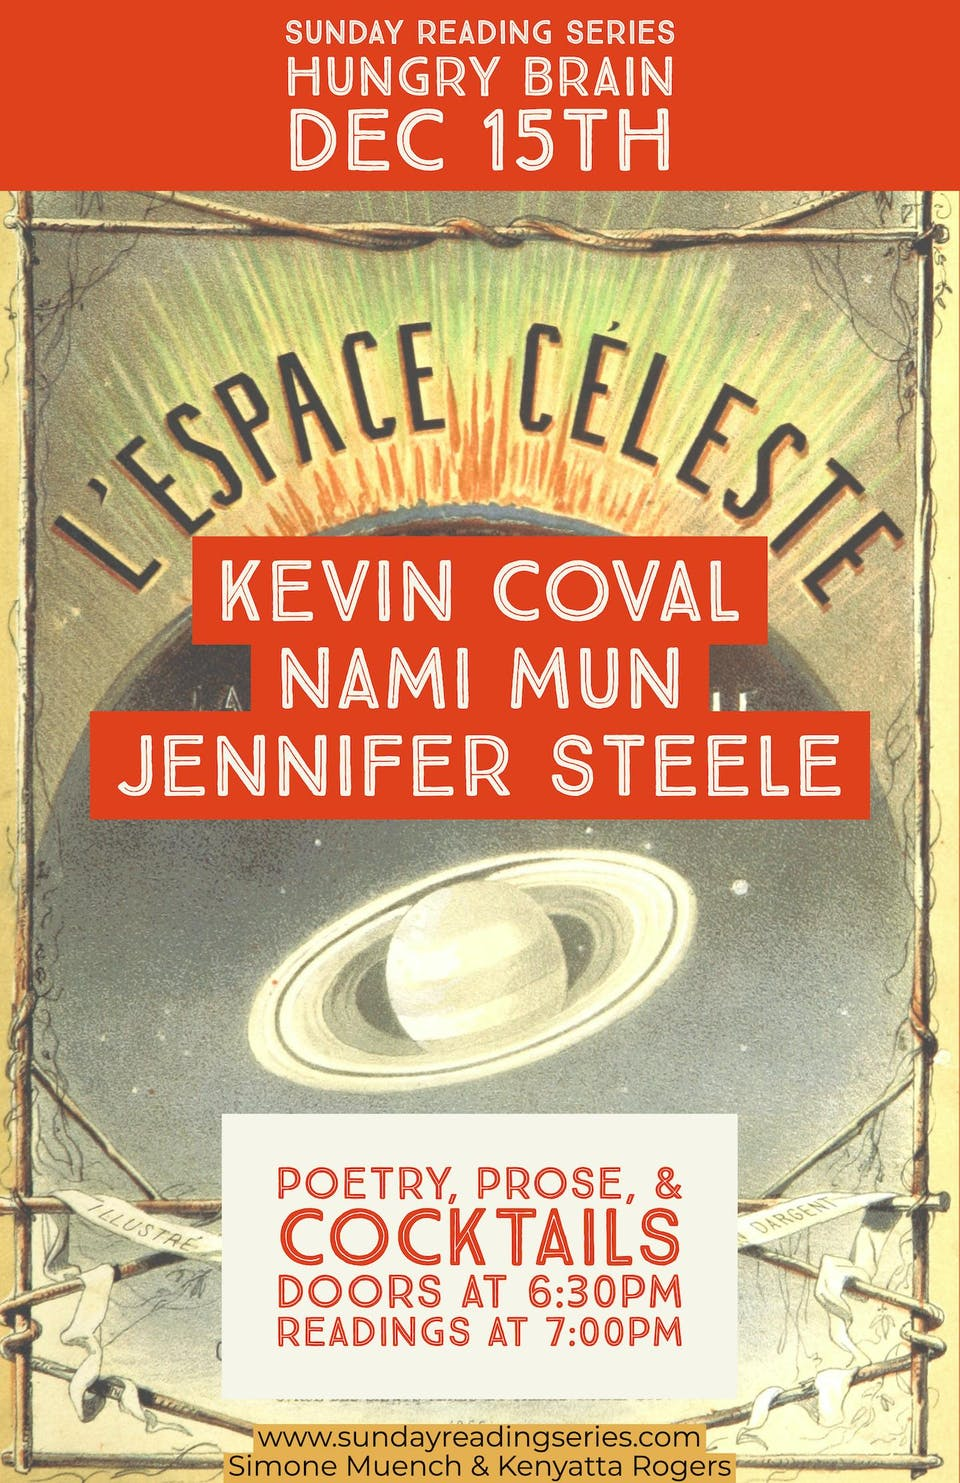 Sunday Reading Series: K. Coval, N. Mun, J. Steele